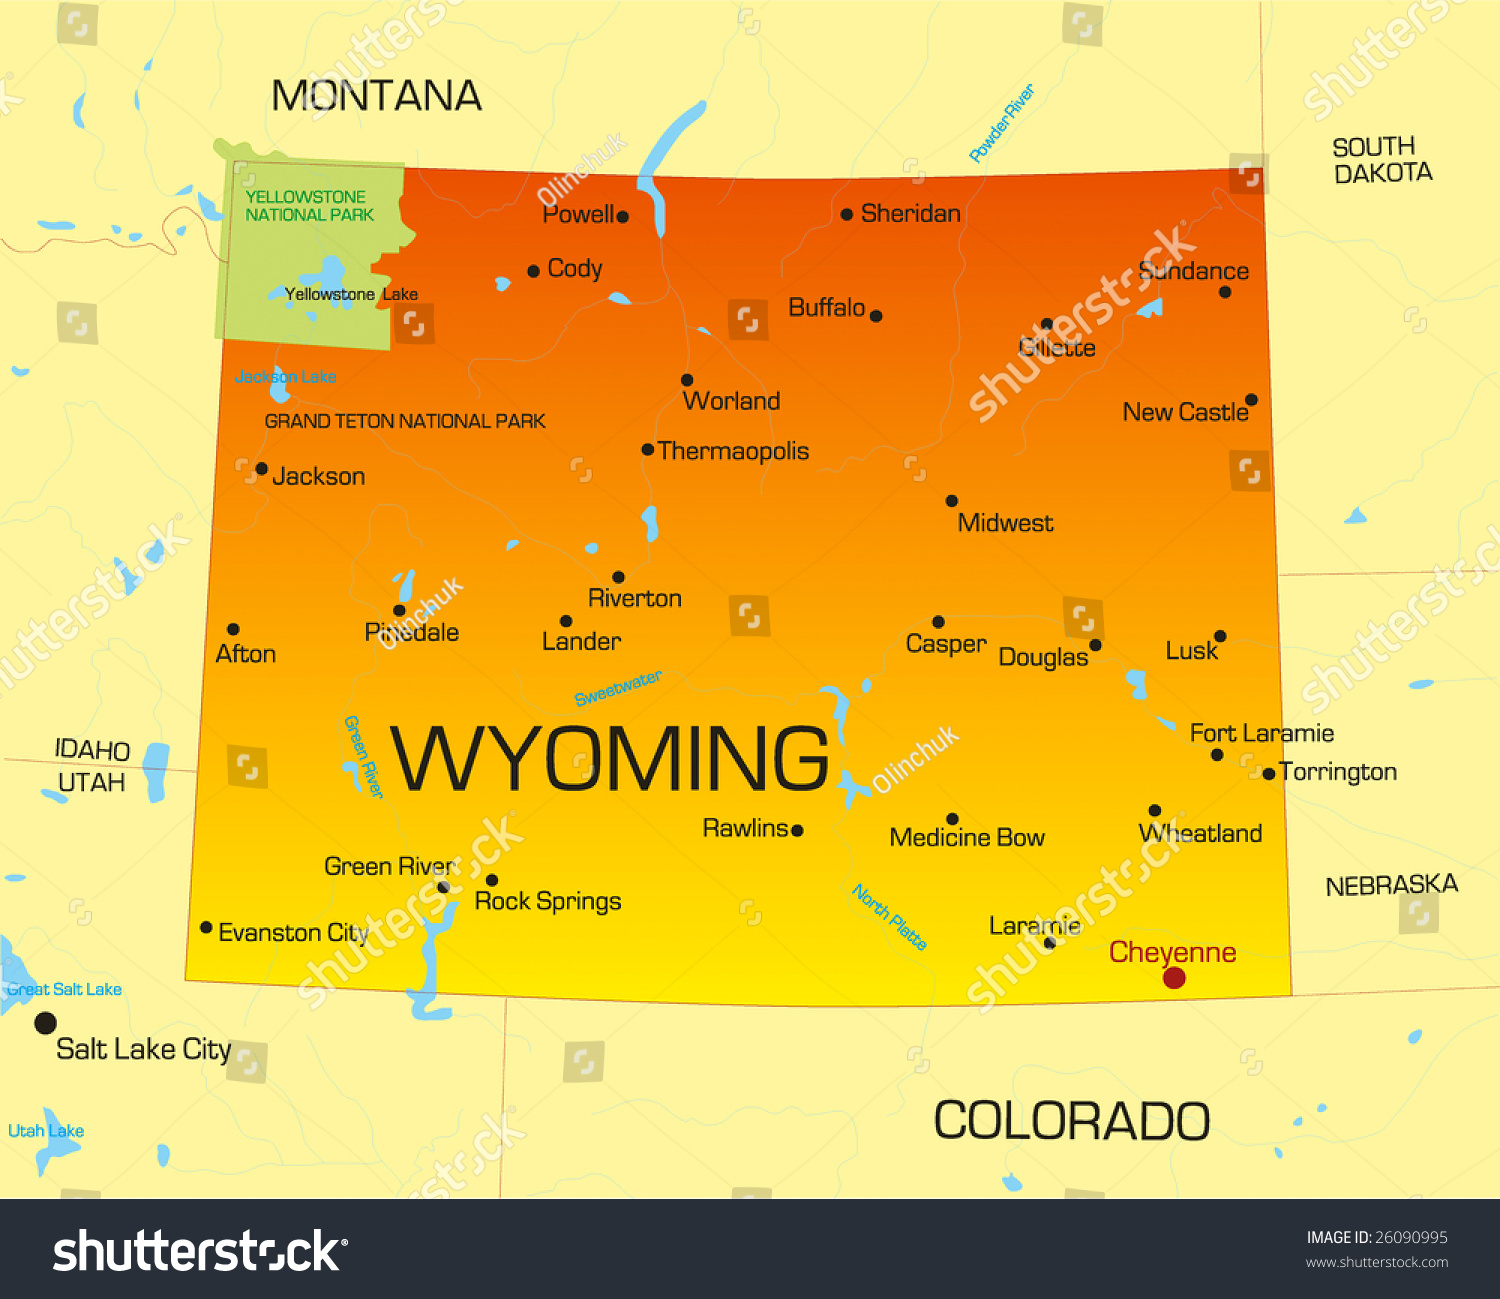 map out multiple addresses with Stock Vector Vector Color Map Of Wyoming State Usa on Stock Photo Trinidad And Tobago Shaded Relief Map Colored According To Vegetation With Major Urban Areas moreover Stock Vector Countries And Capitals Of The Europe Vector Illustration furthermore Stock Photo Chalermprakiet Temple L ang Thailand together with Stock Photo Anatomical Body Human Skeleton Anatomy Of Human Bony System Body Surface Contour And Palpable additionally Stock Vector Arabian Peninsula.